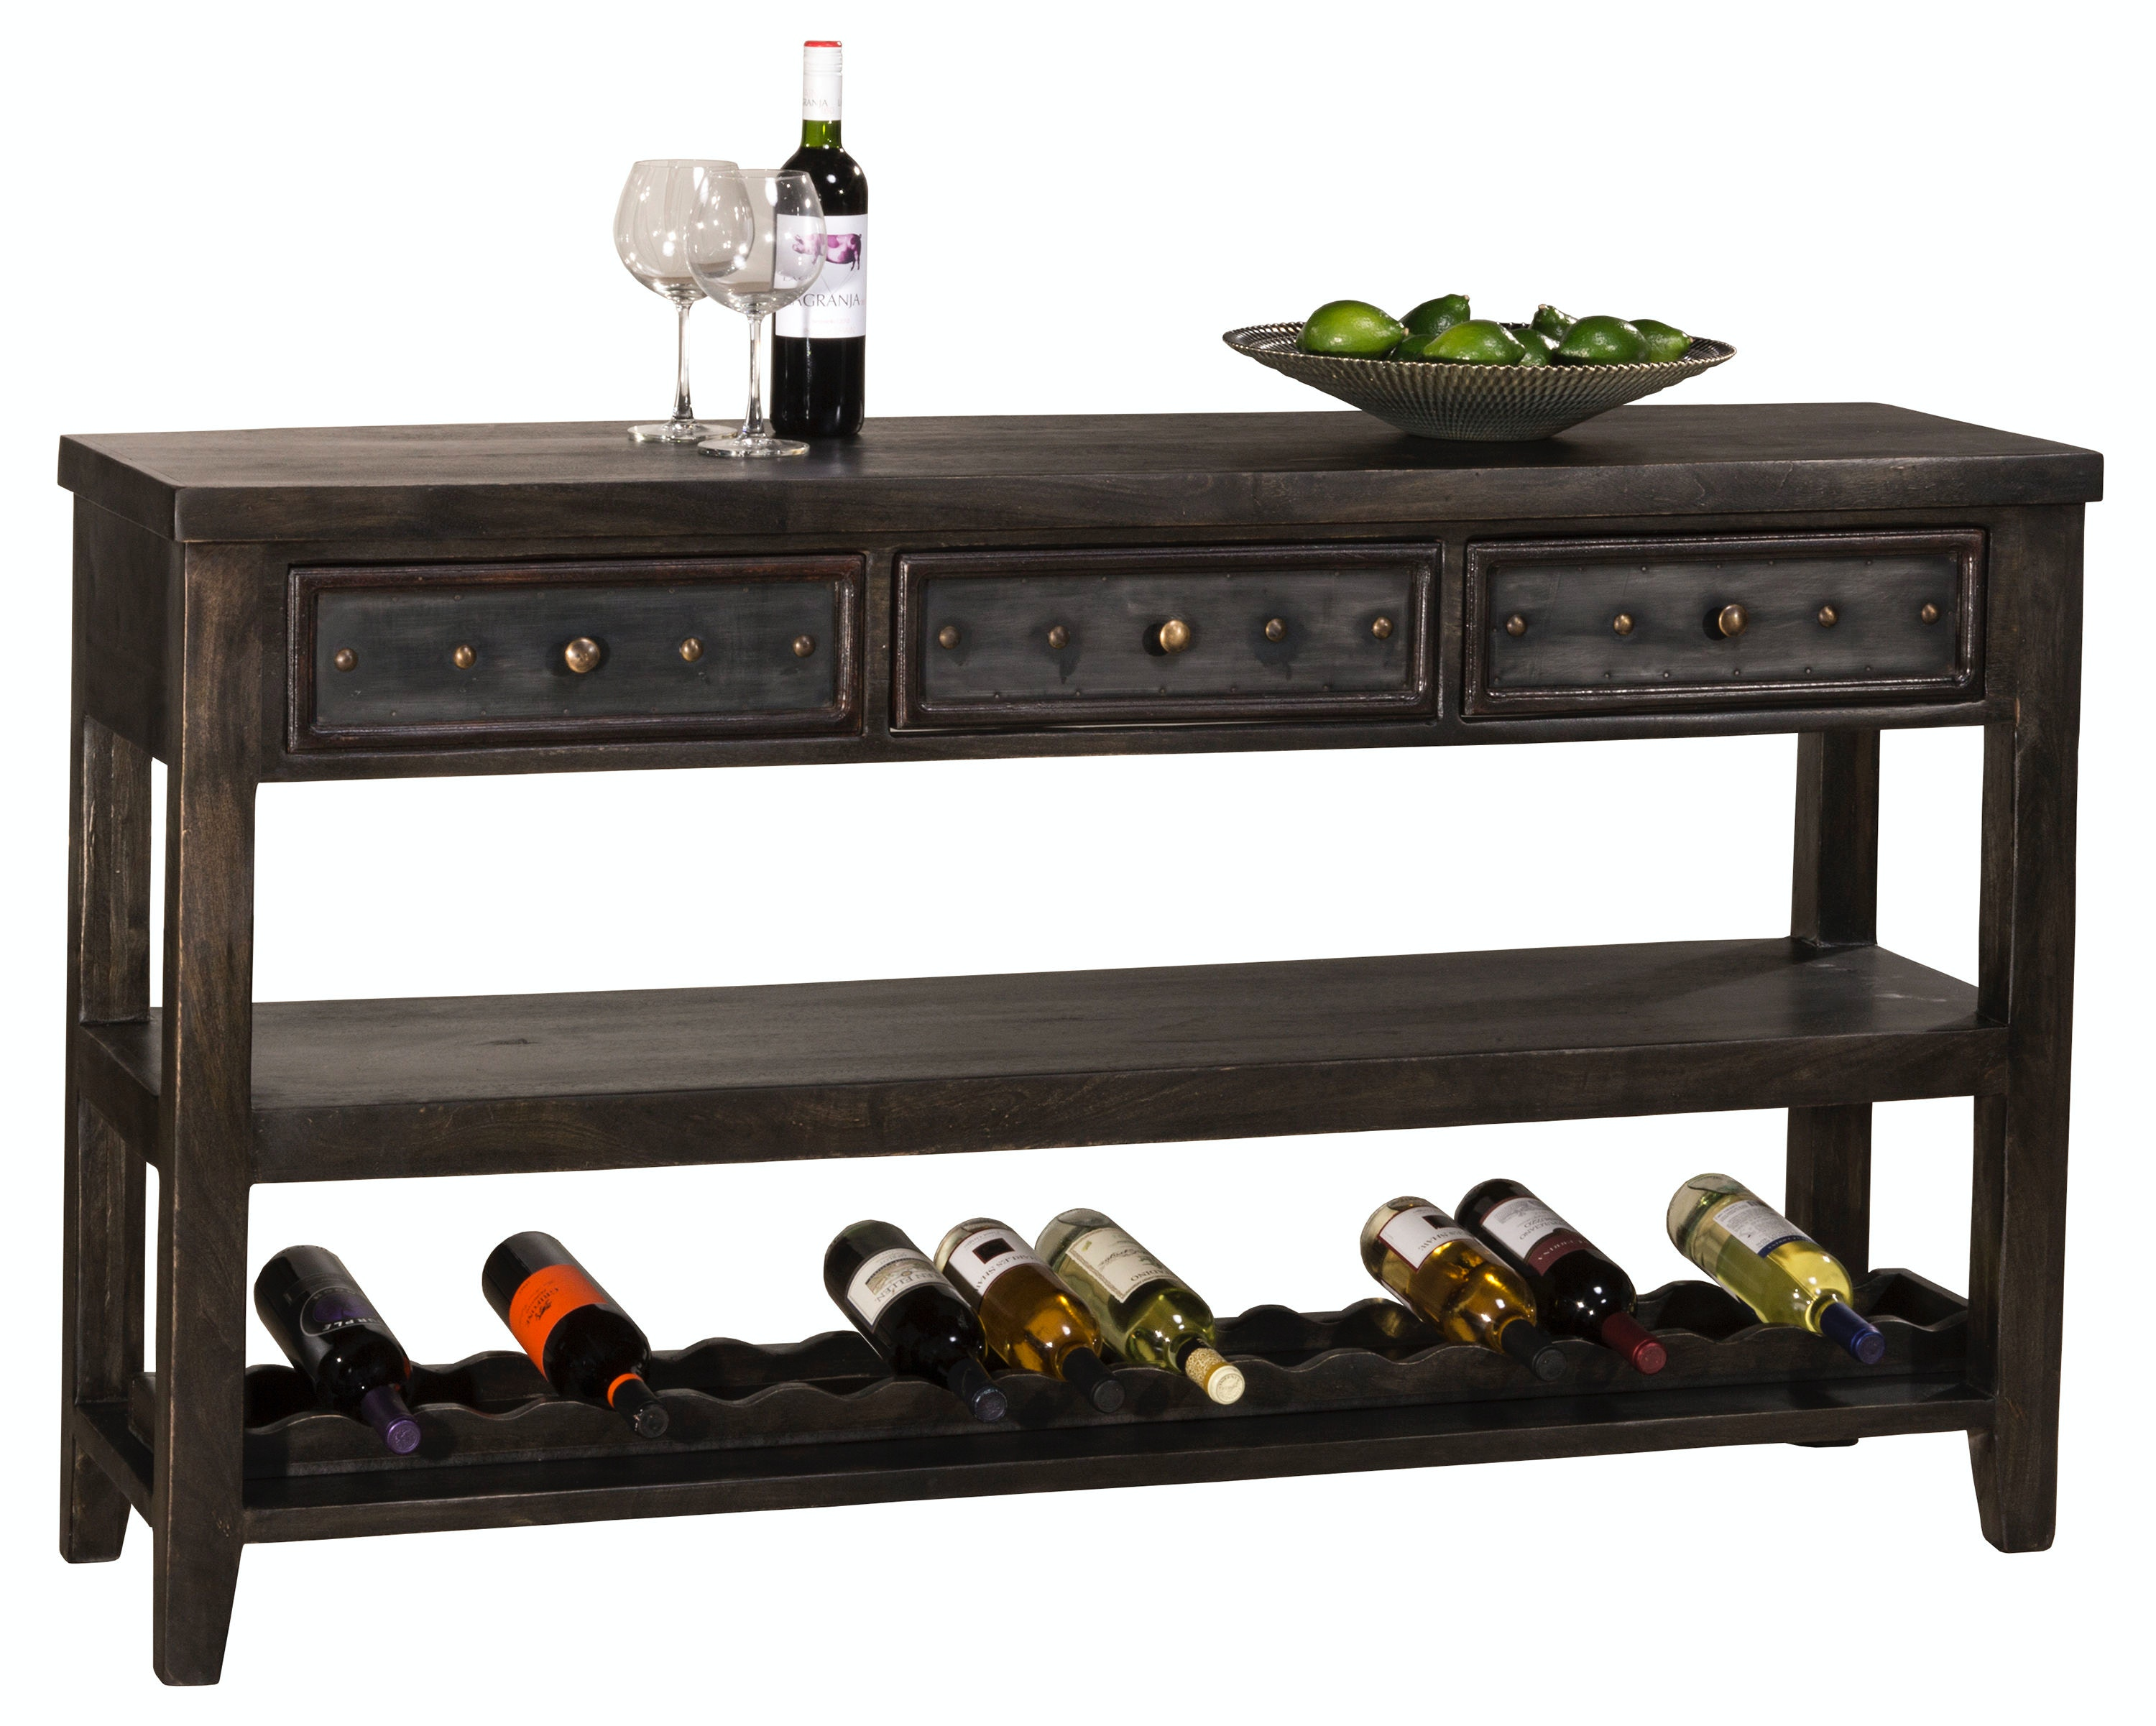 Hillsdale Furniture Bolt Console Table With Removable Wine Rack HIL5805871  From Walter E. Smithe Furniture